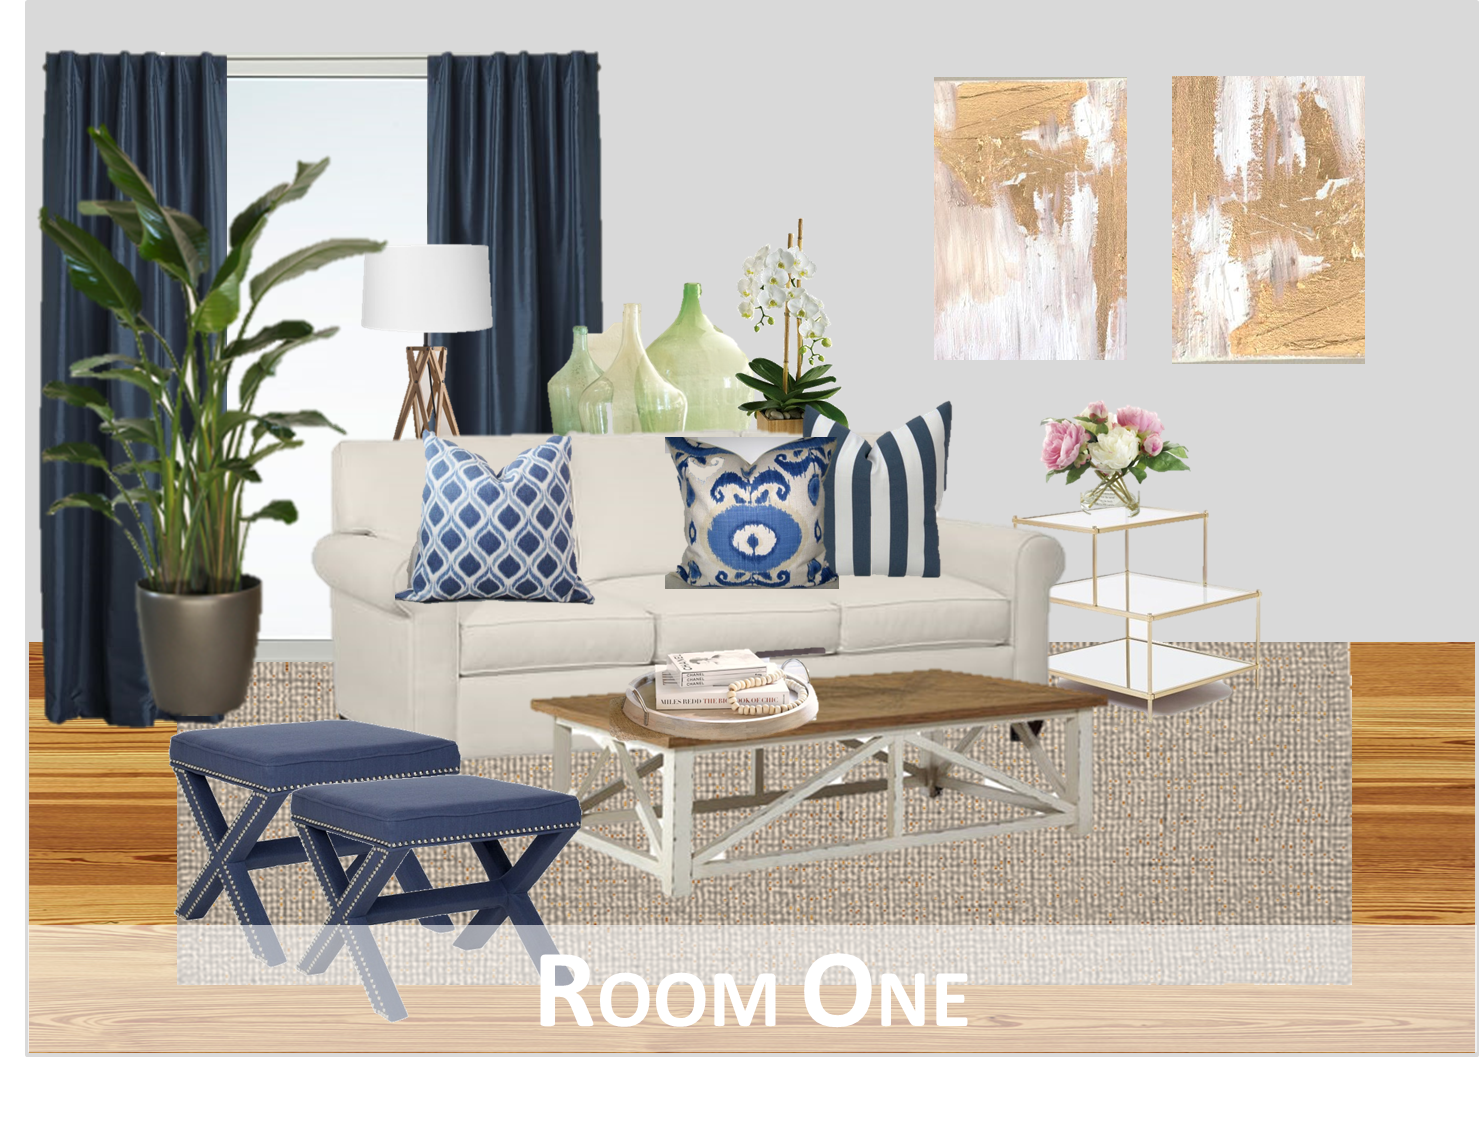 Room One Here We Brought In Color Through The Navy Curtains Stools And Patterned Blue White Throw Pillows Rest Of Is Very Neutral